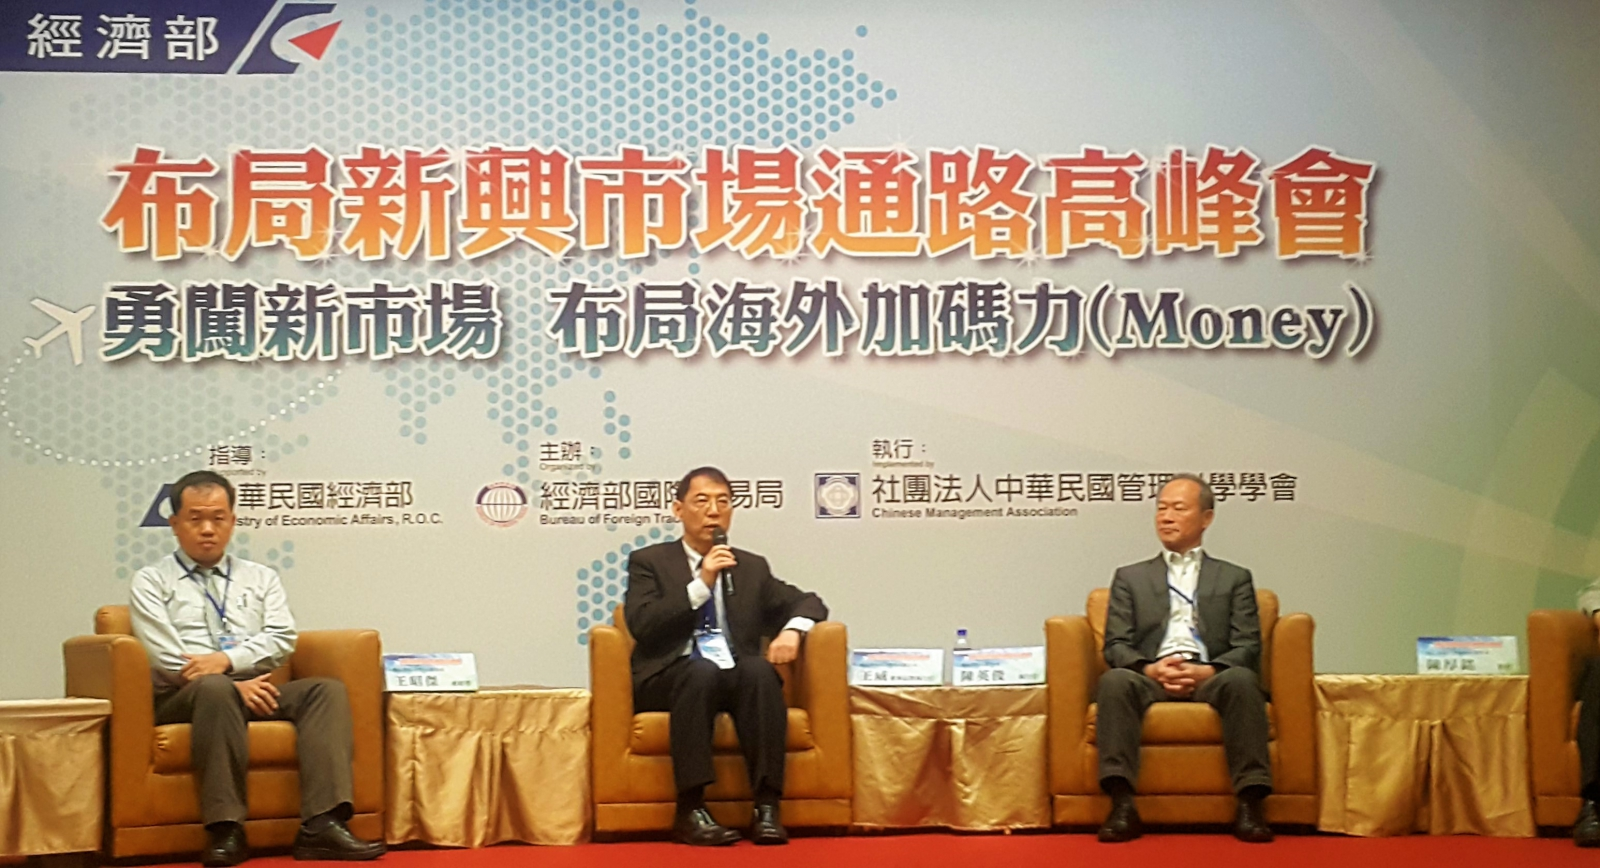 Dr. William Wang, CEO of Crystalvue, delivers a keynote speech at the Emerging Markets Summit